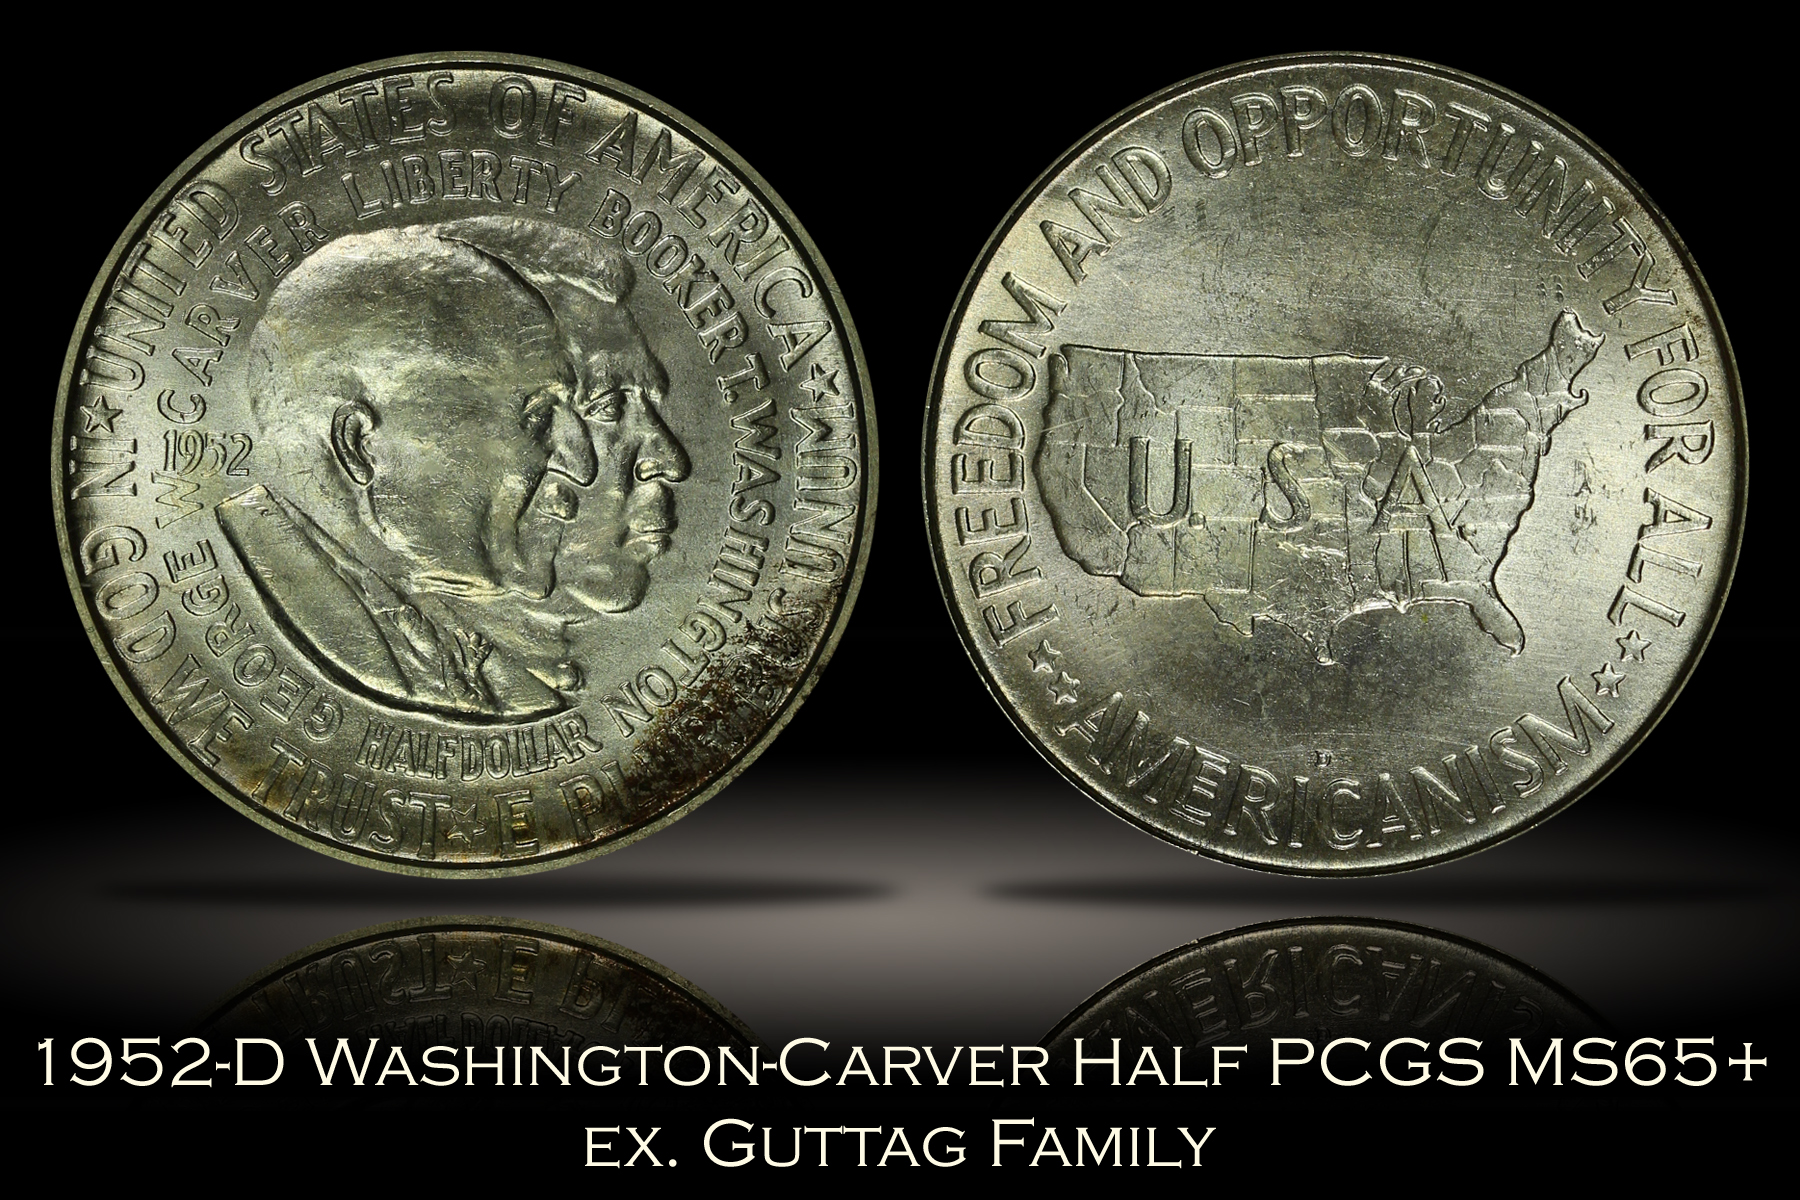 1952-D Washington-Carver Half PCGS MS65+ CAC ex. Guttag Family